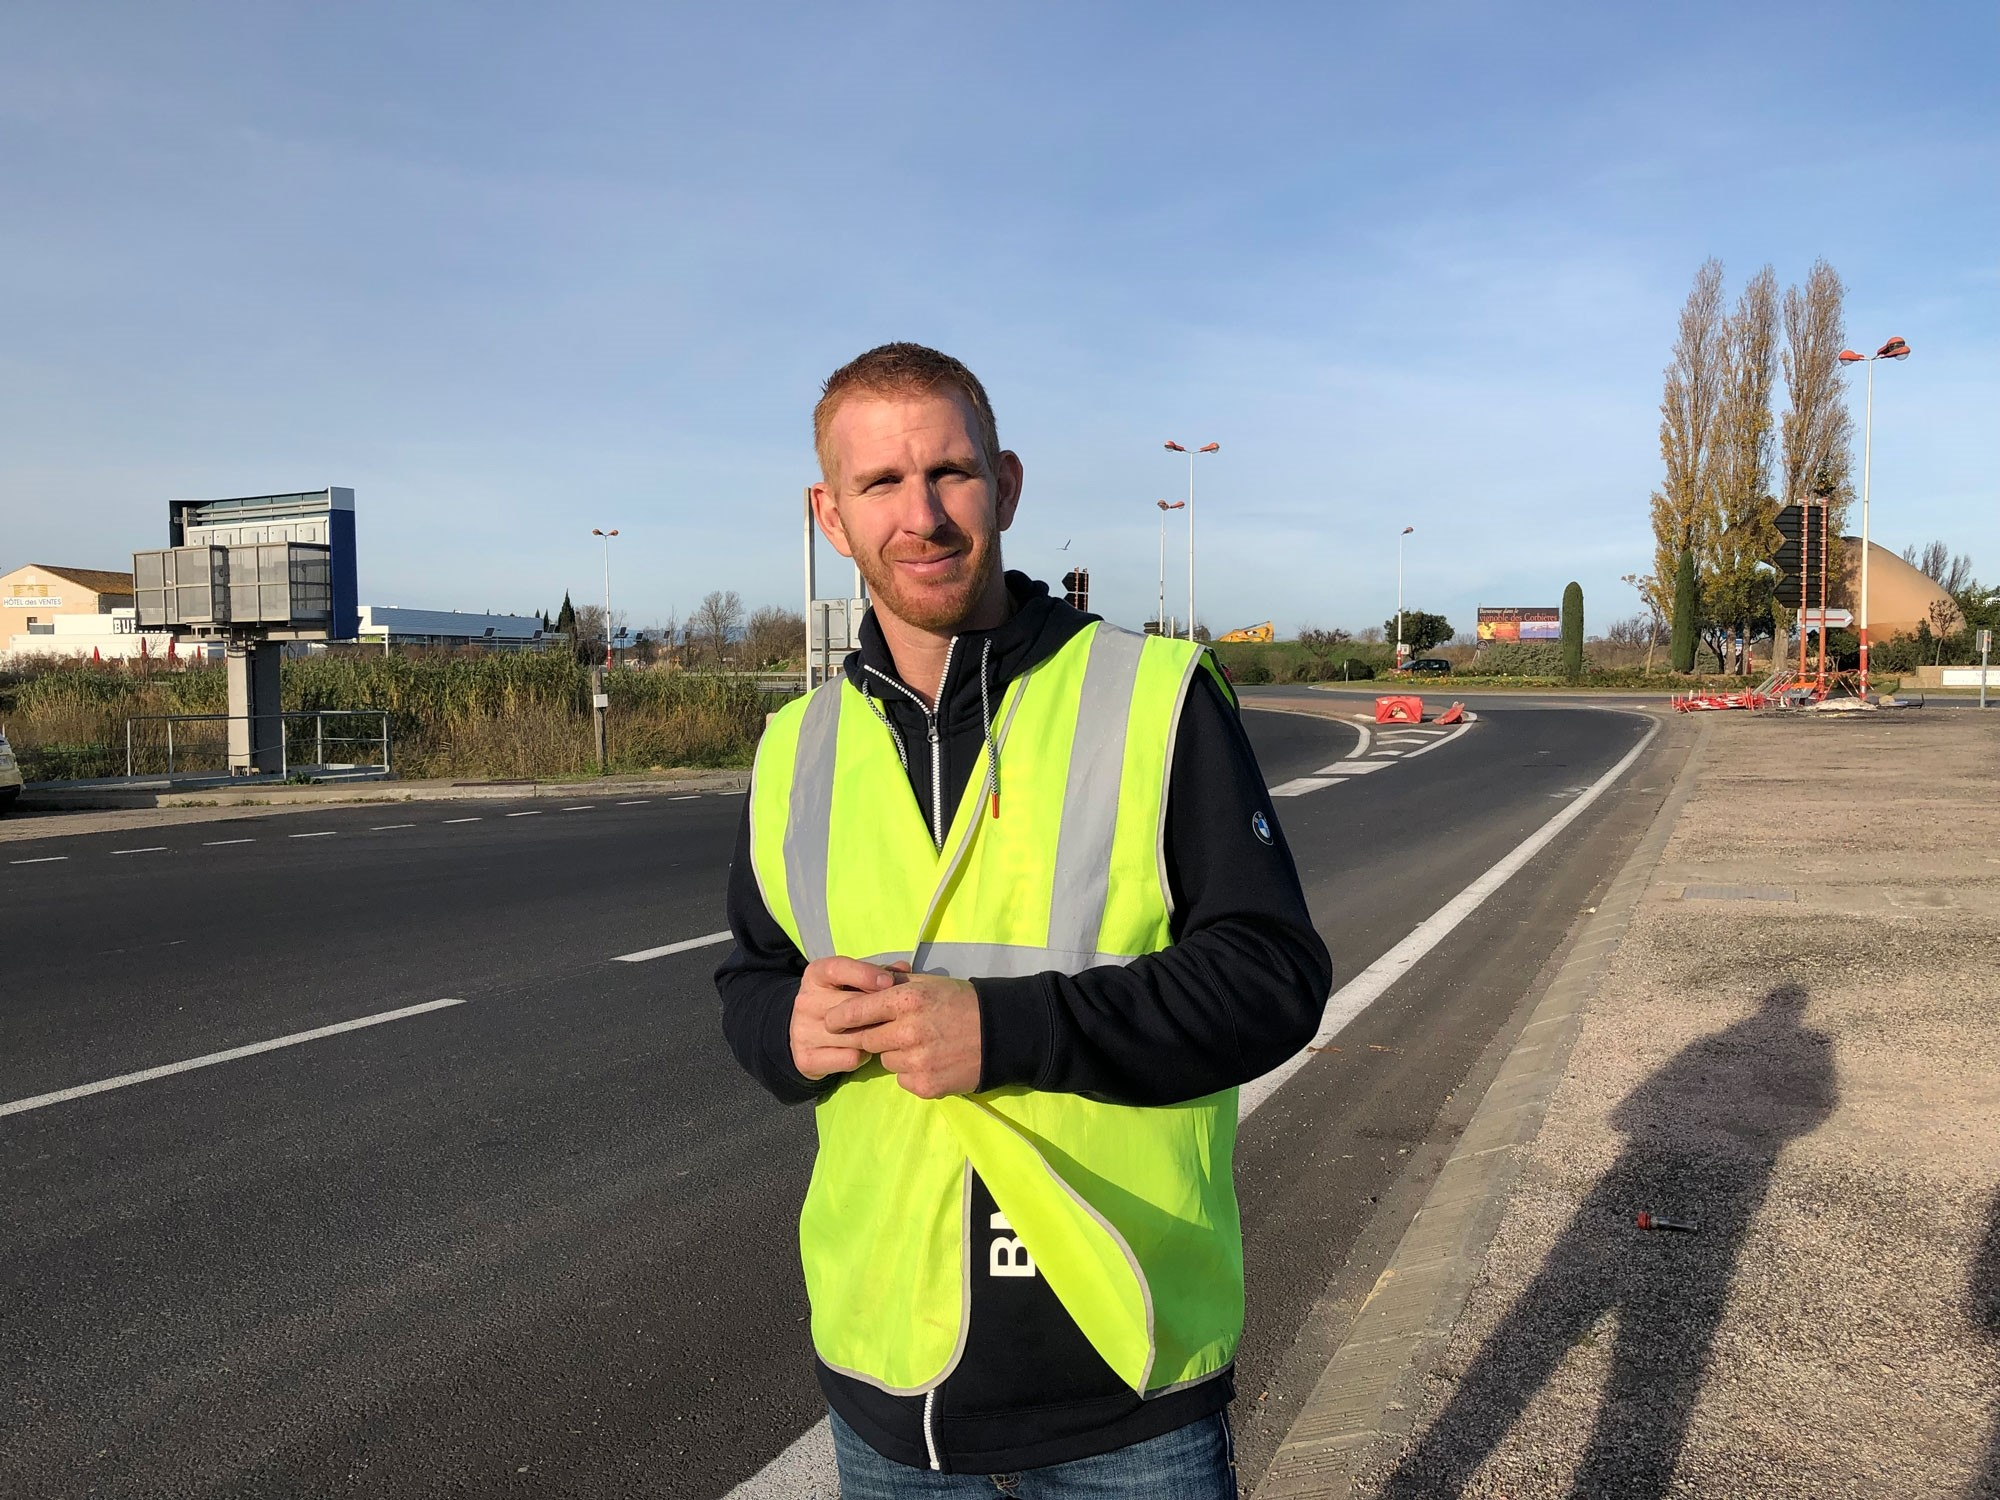 Ghislain Coutard, the u201cvestmanu201d on a highway while trying to gather signatures for a proposed referendum (Photographs taken by Emre Bau015faran)